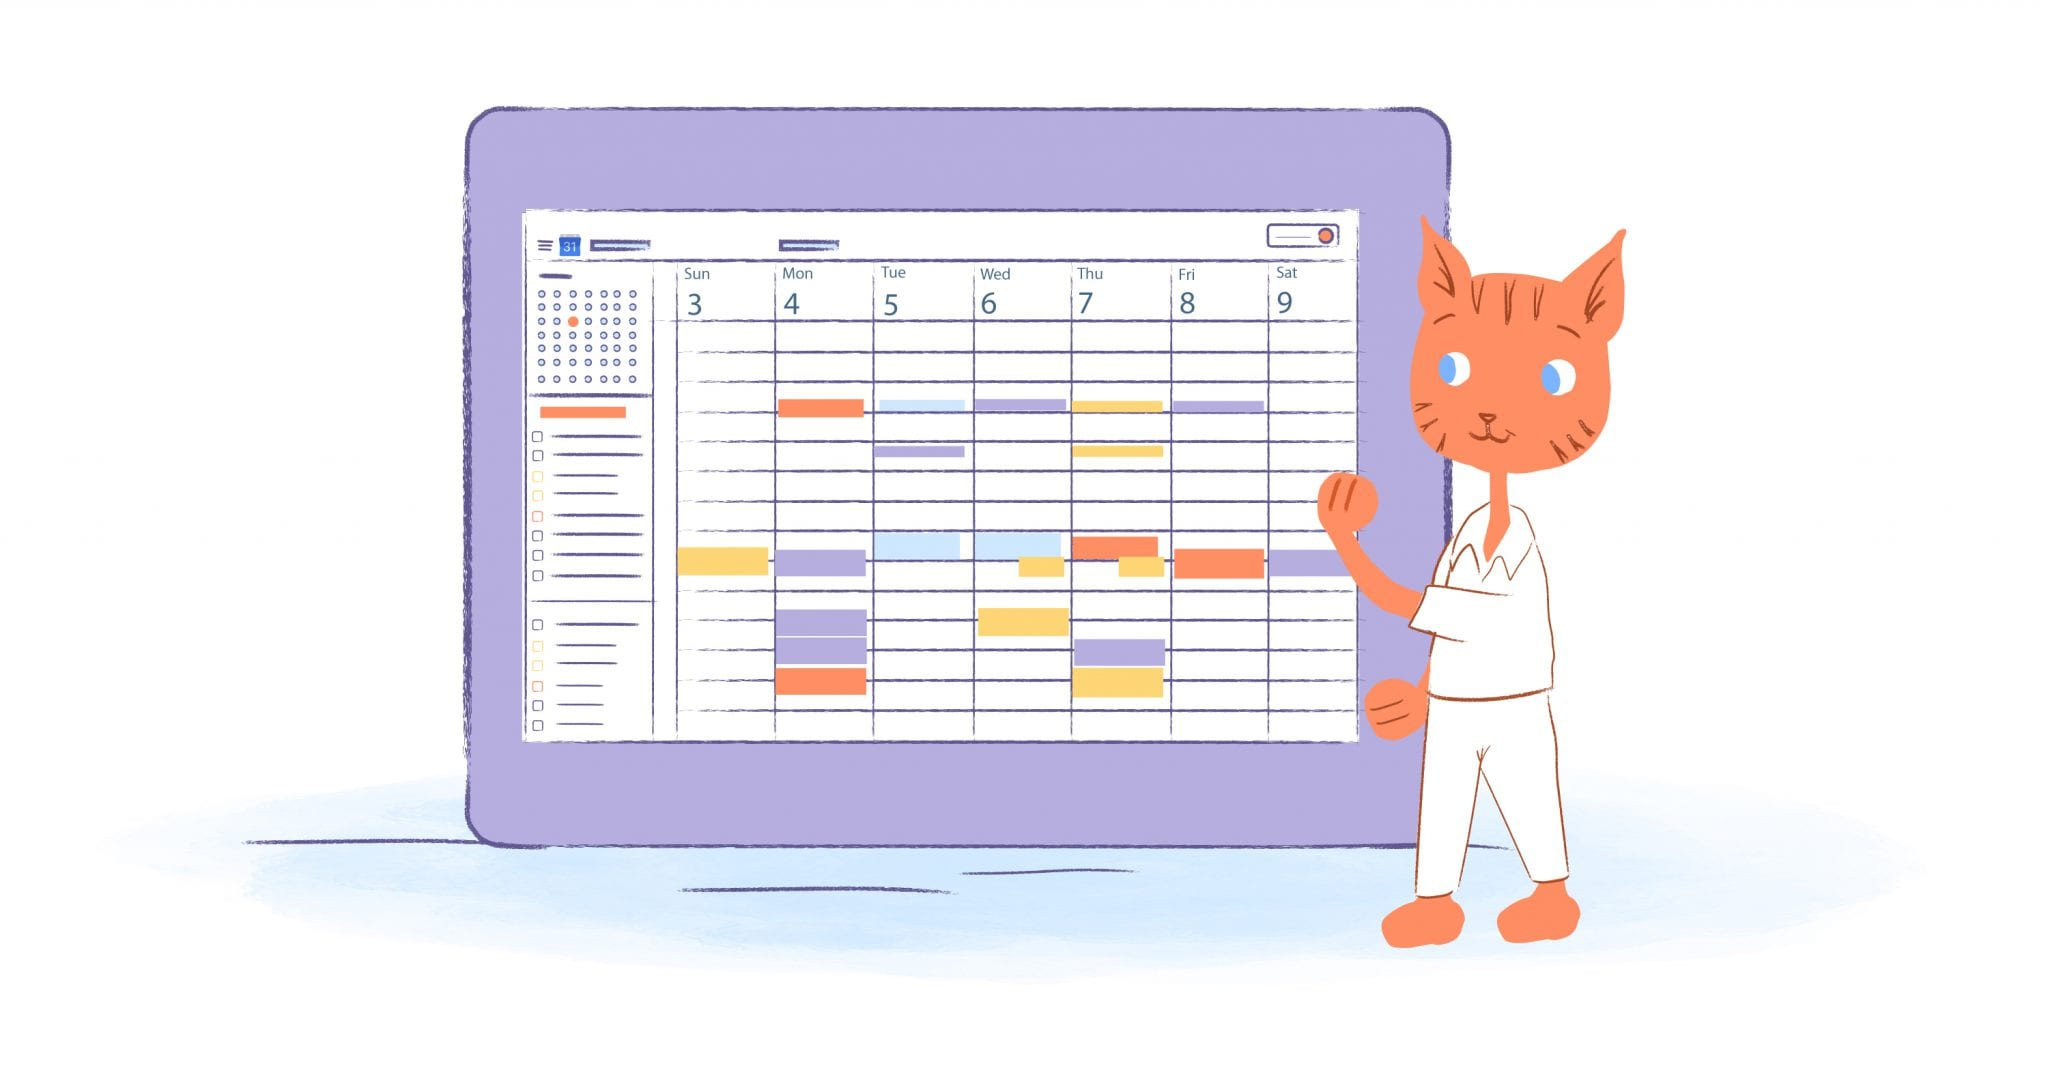 The Ultimate Guide To Google Calendar  Calendar inside 15 Minute Time Slots Google Calendar